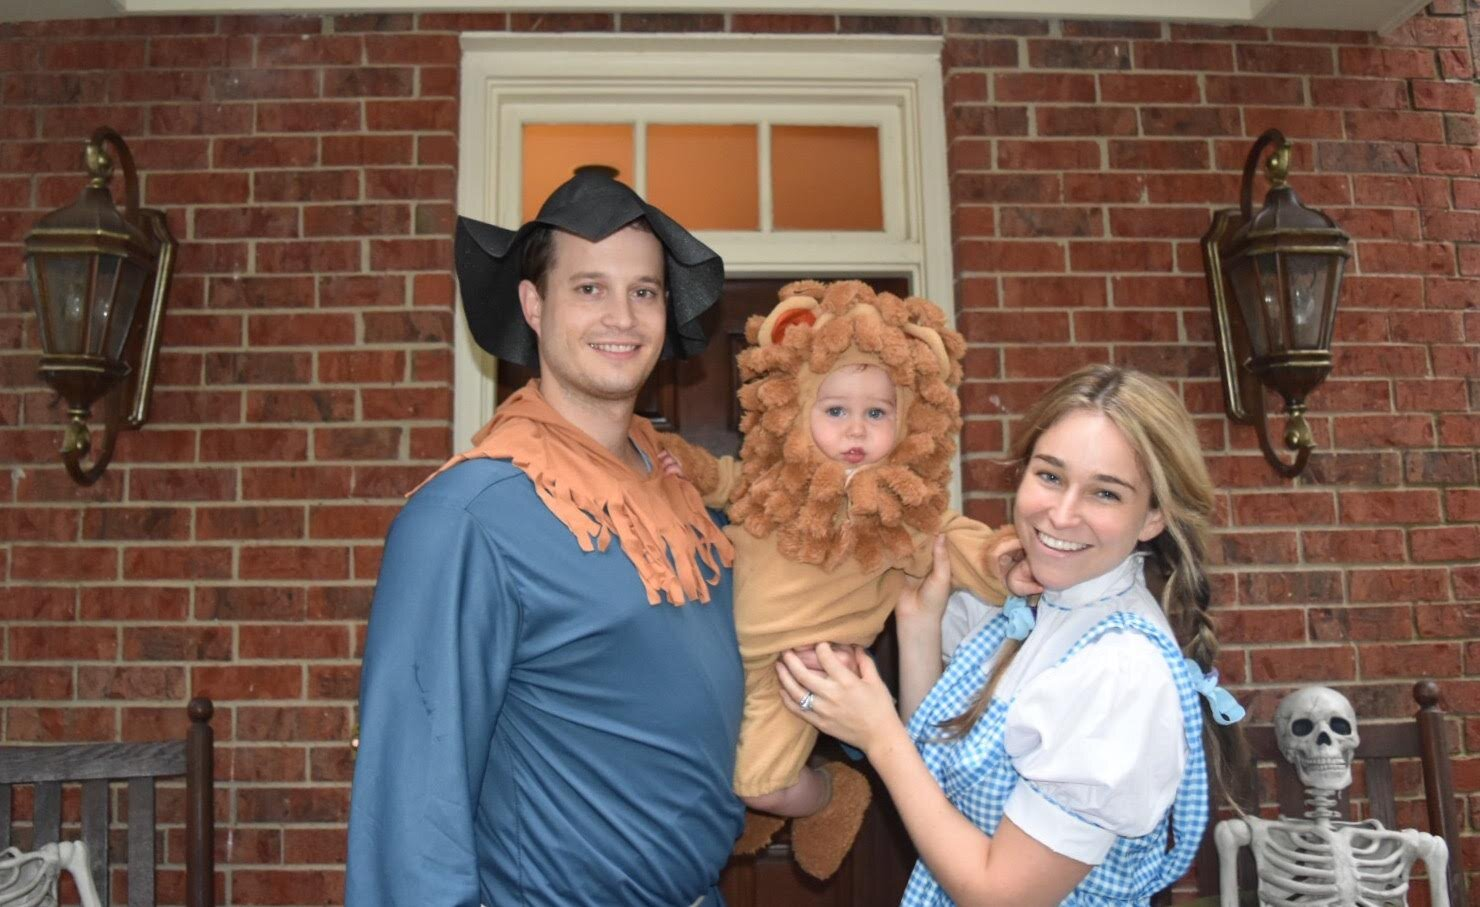 One more throwback… our first Halloween with Wil!